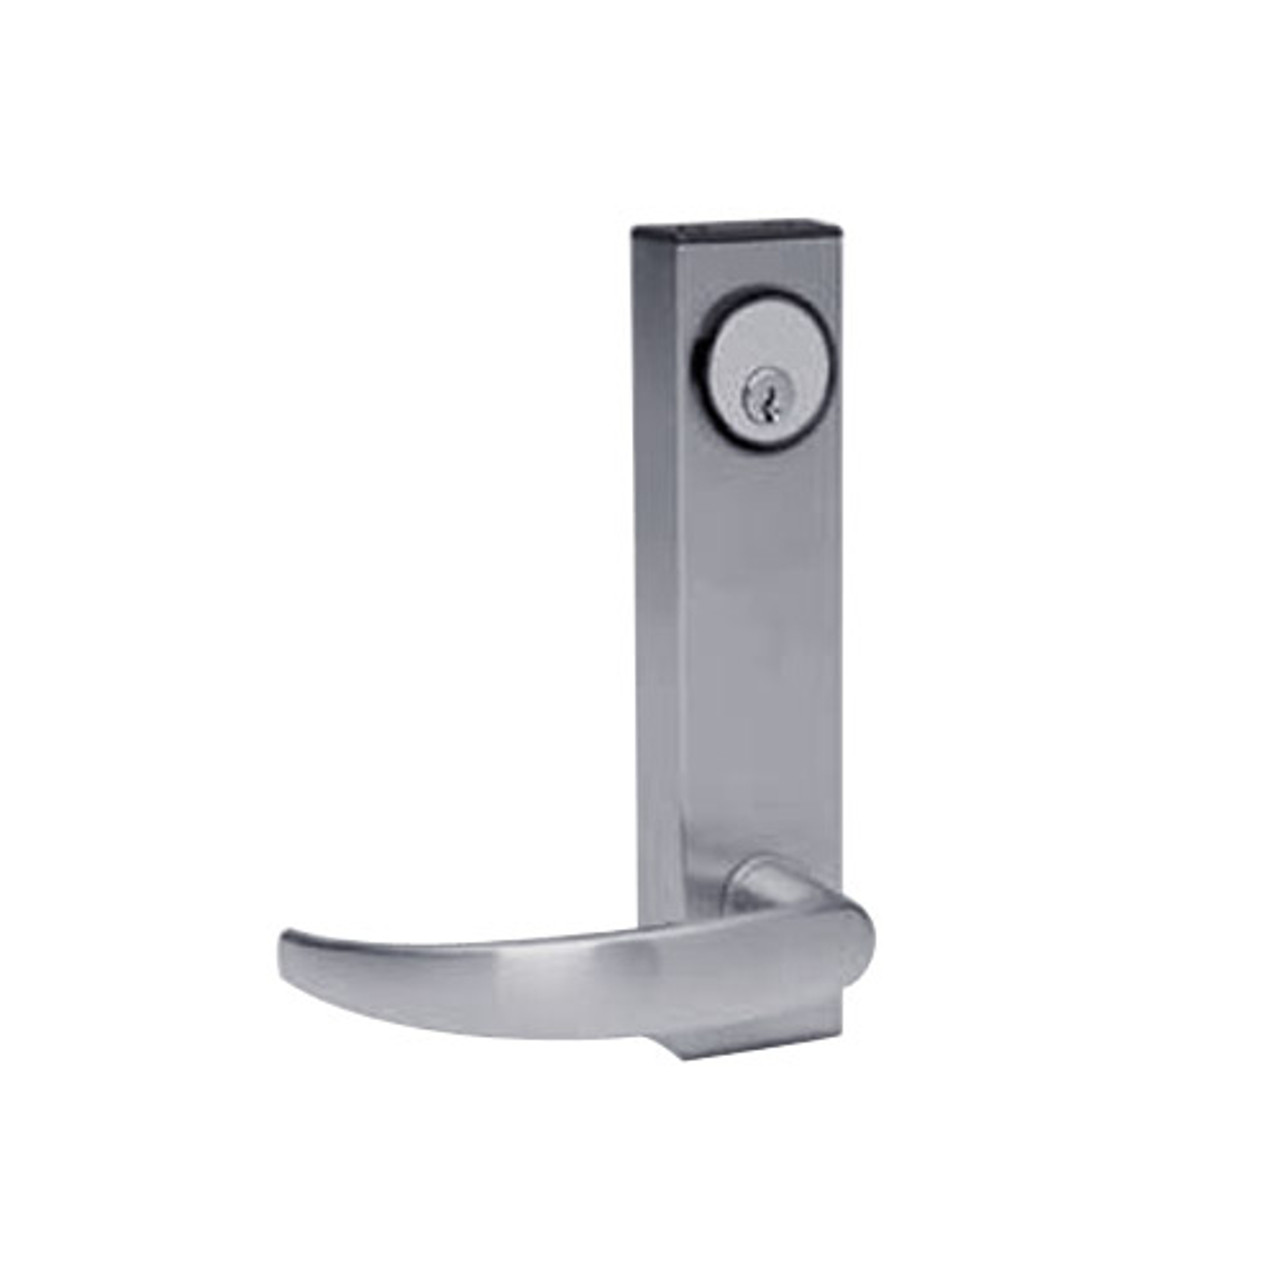 3080-01-0-97-US32D Adams Rite Standard Entry Trim with Curve Lever in Satin Stainless Finish